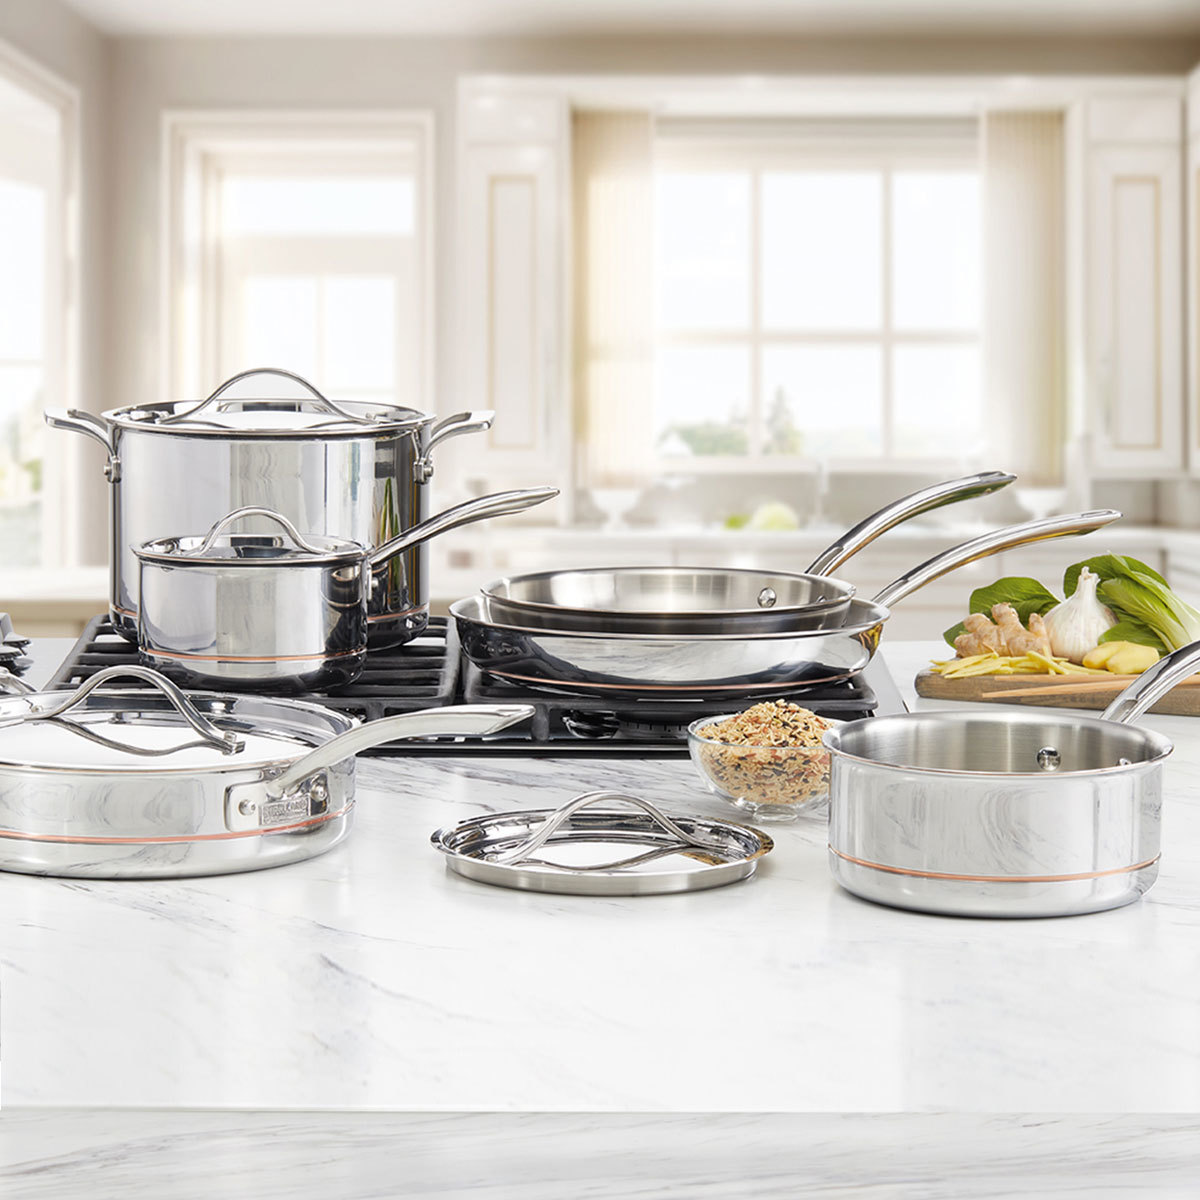 Kirkland Signature Stainless Steel 10 Piece Cookware Set  Costco UK